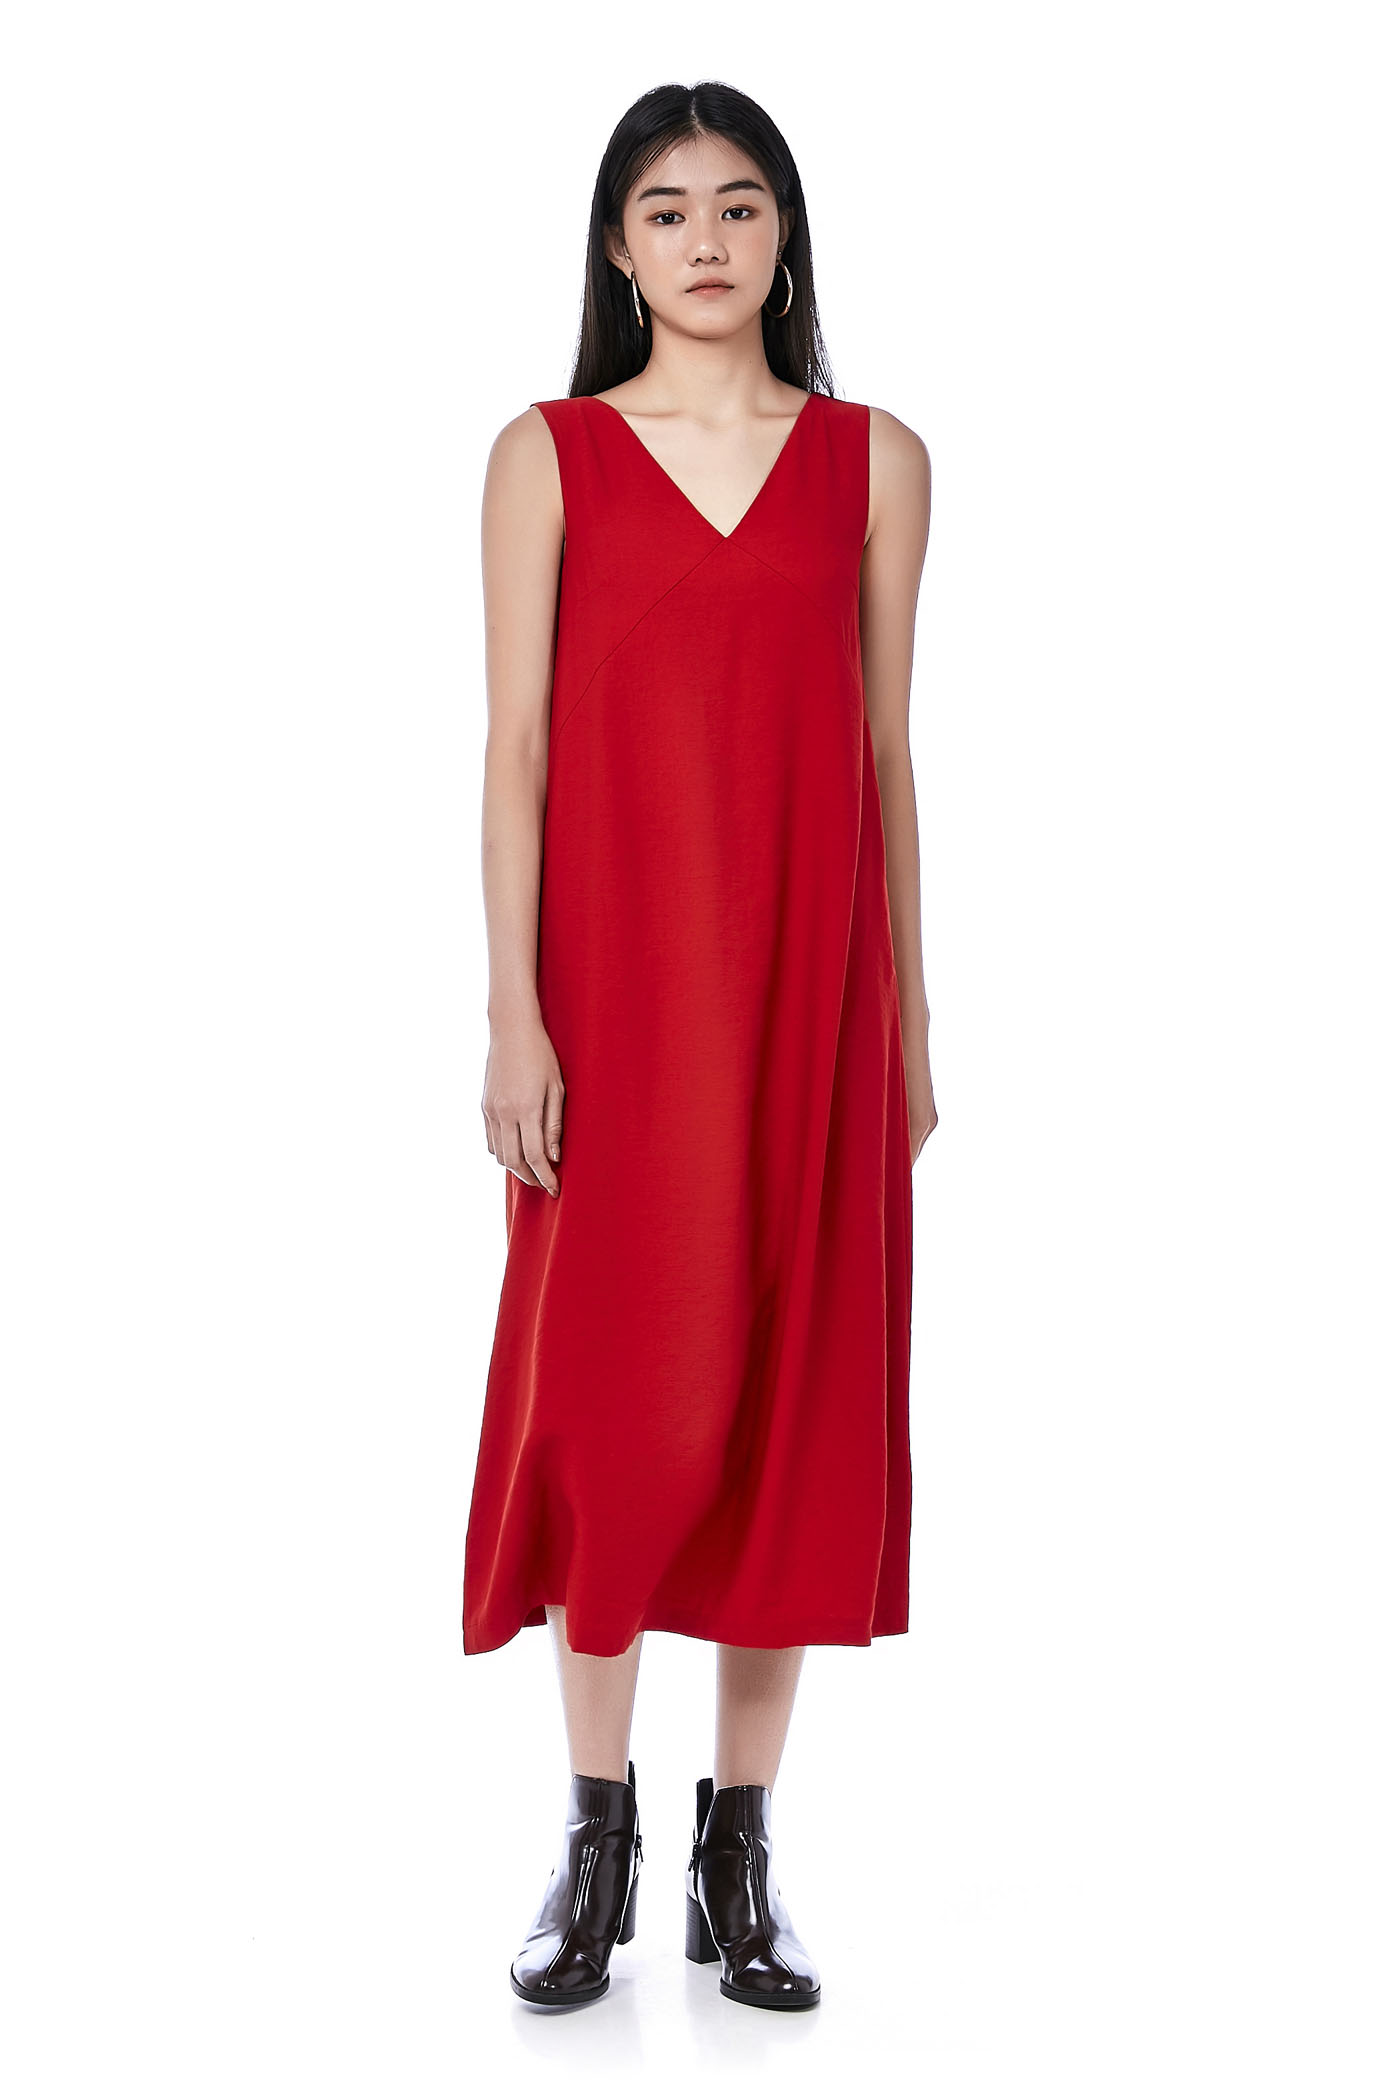 Hilson Swing Dress